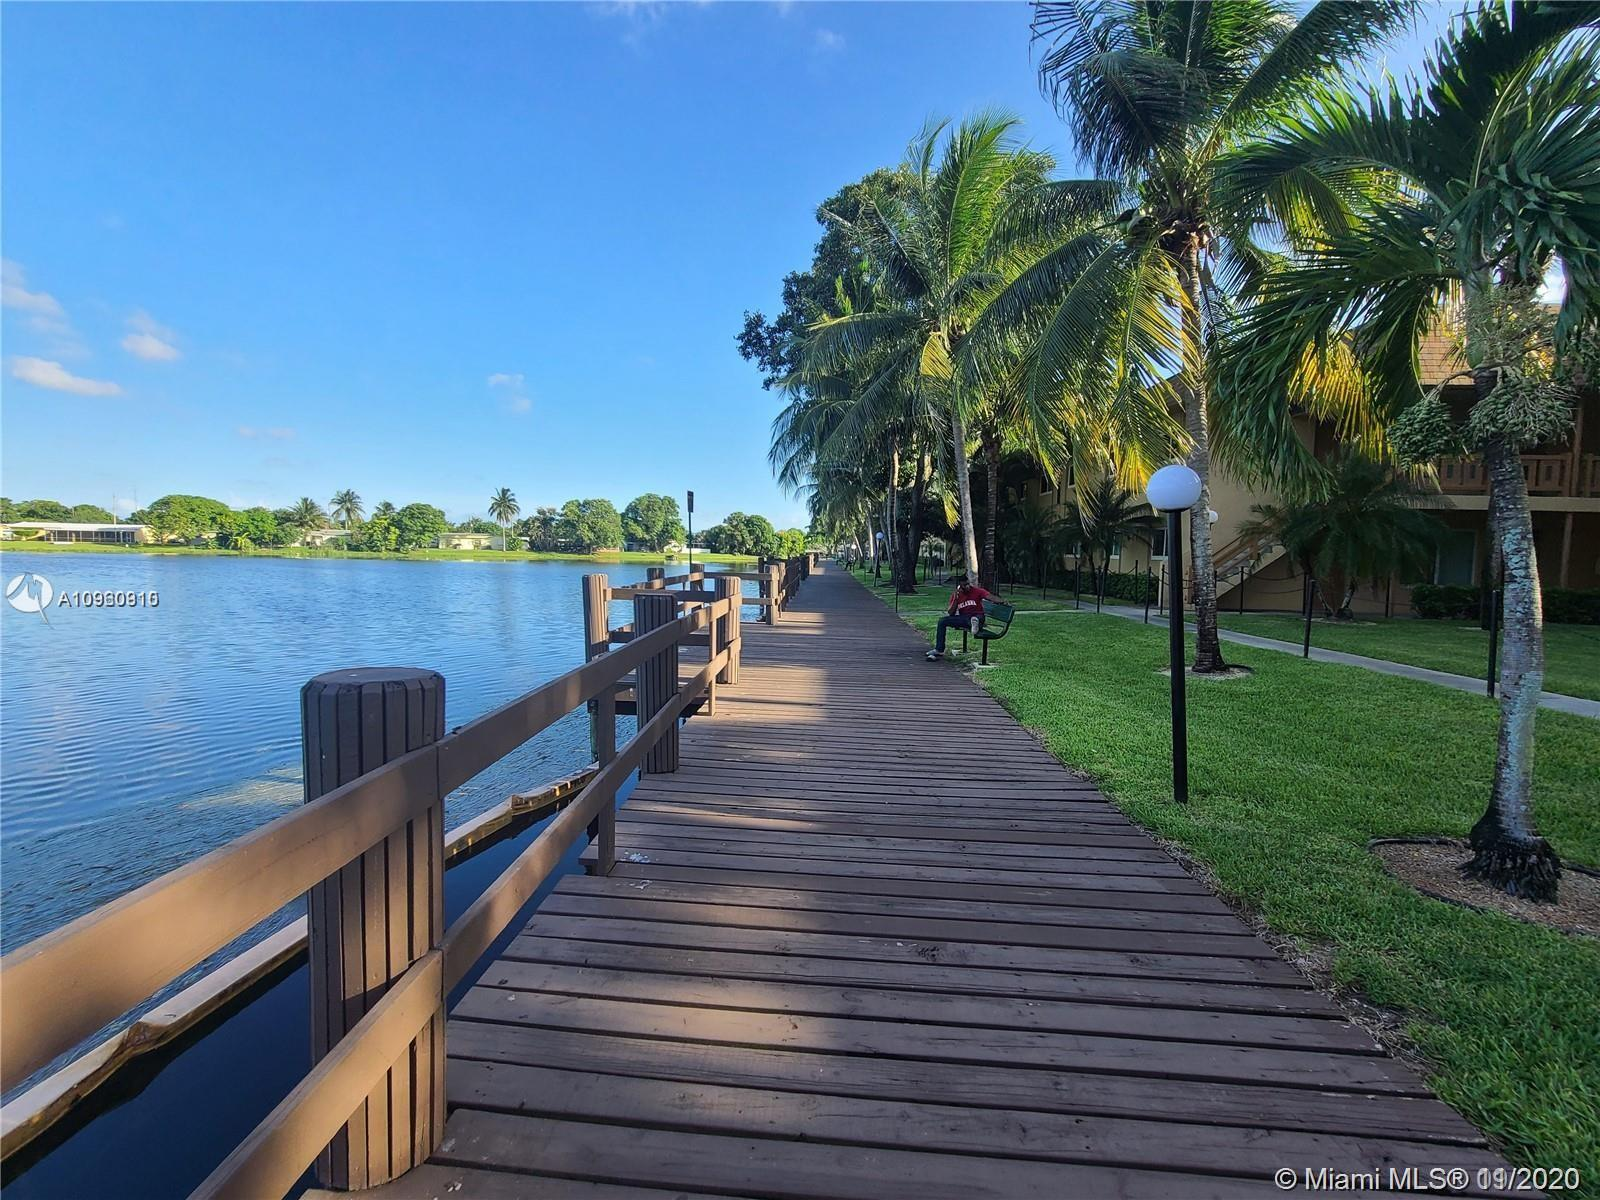 2404 NW 39th Way # 204, Lauderdale Lakes, Florida 33311, 2 Bedrooms Bedrooms, ,1 BathroomBathrooms,Residential Lease,For Rent,2404 NW 39th Way # 204,A10960910